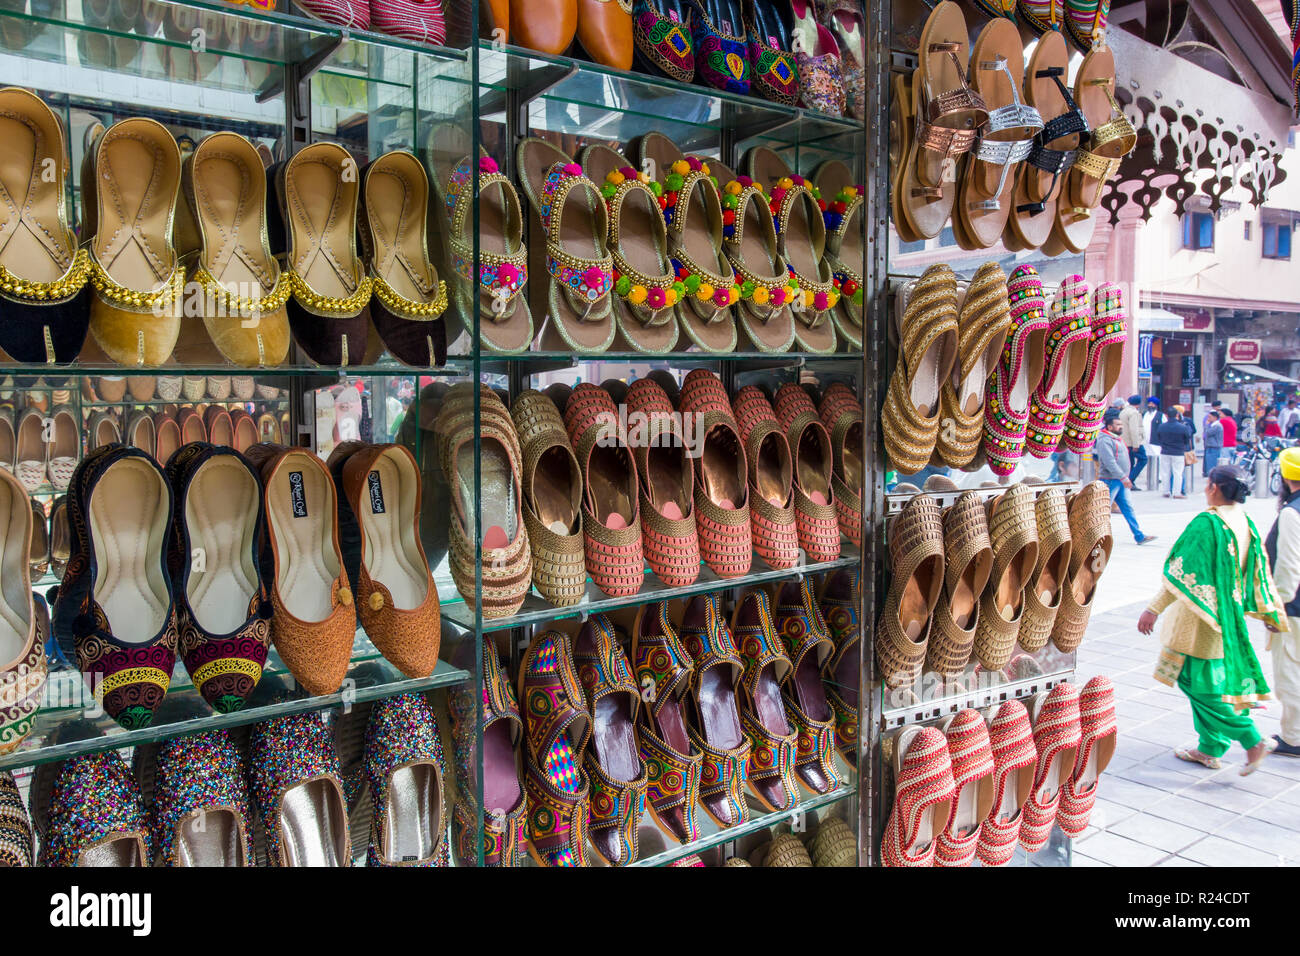 Traditional Indian slippers for sale, Amritsar, Punjab, India, Asia Stock Photo